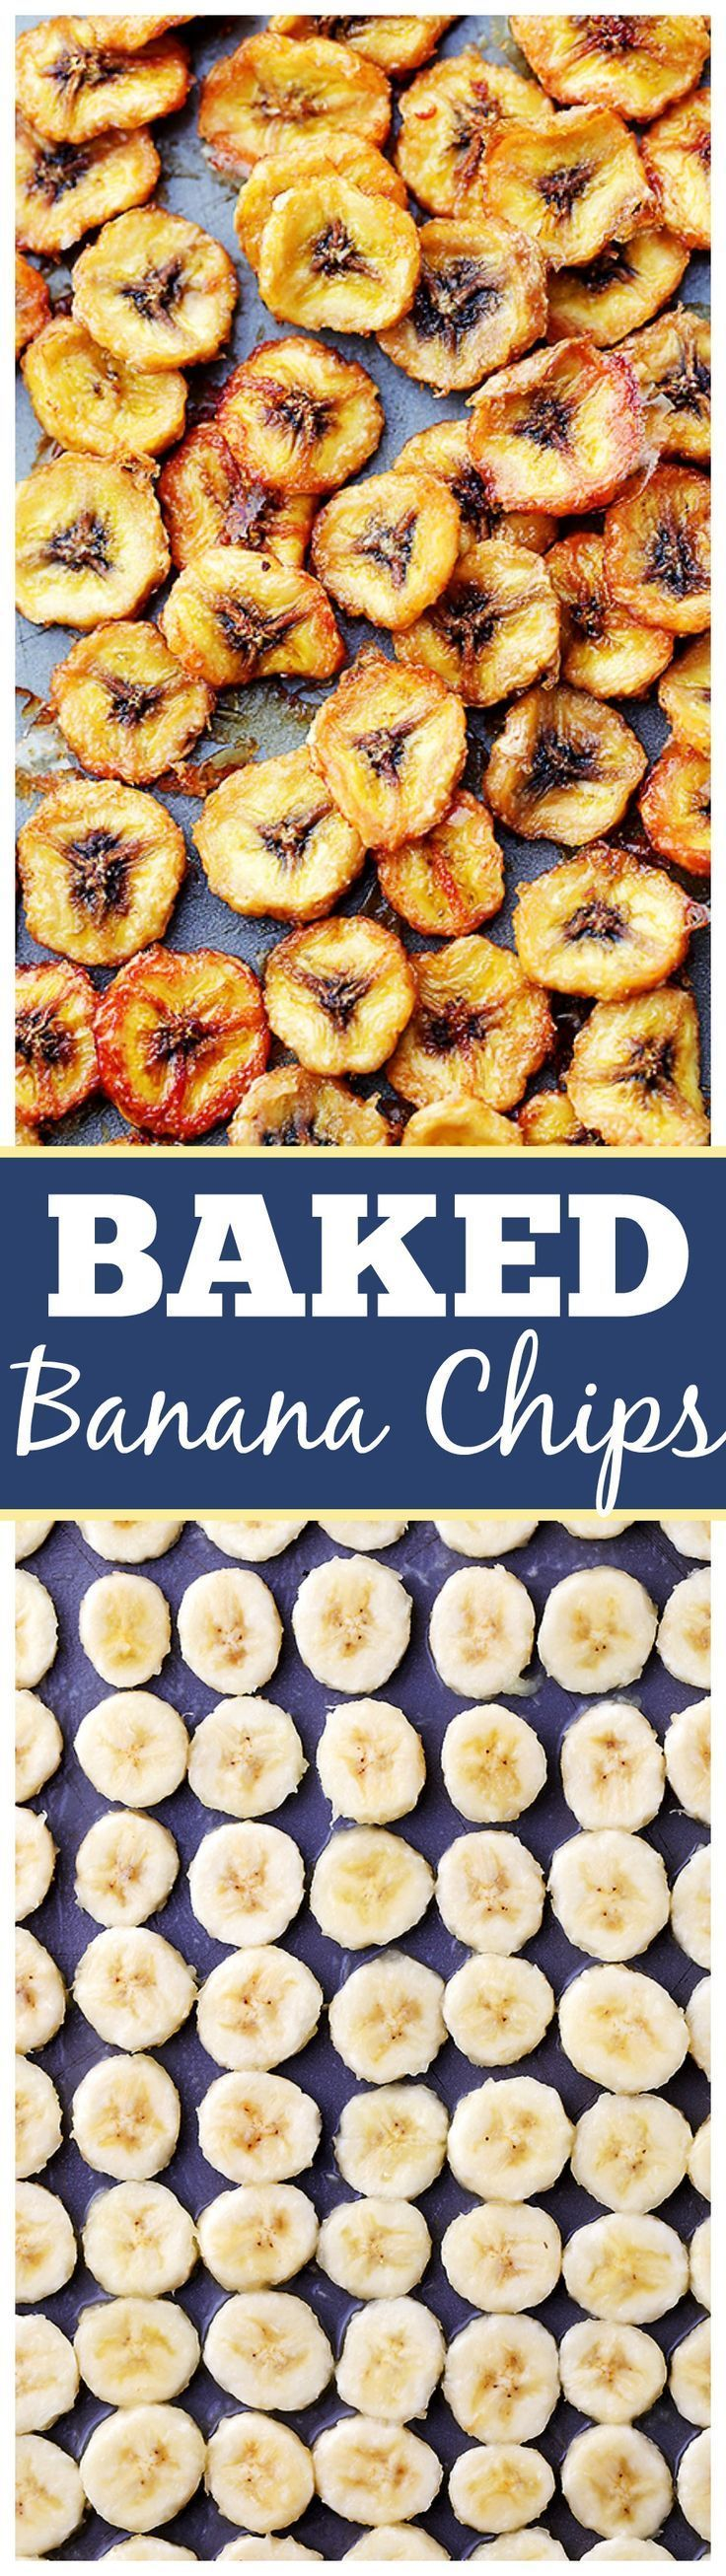 Homemade Baked Banana Chips – Deliciously sweet and guilt-free baked banana chips are so easy to make and are the perfect portable, healthy snack to have on hand. | https://lomejordelaweb.es/